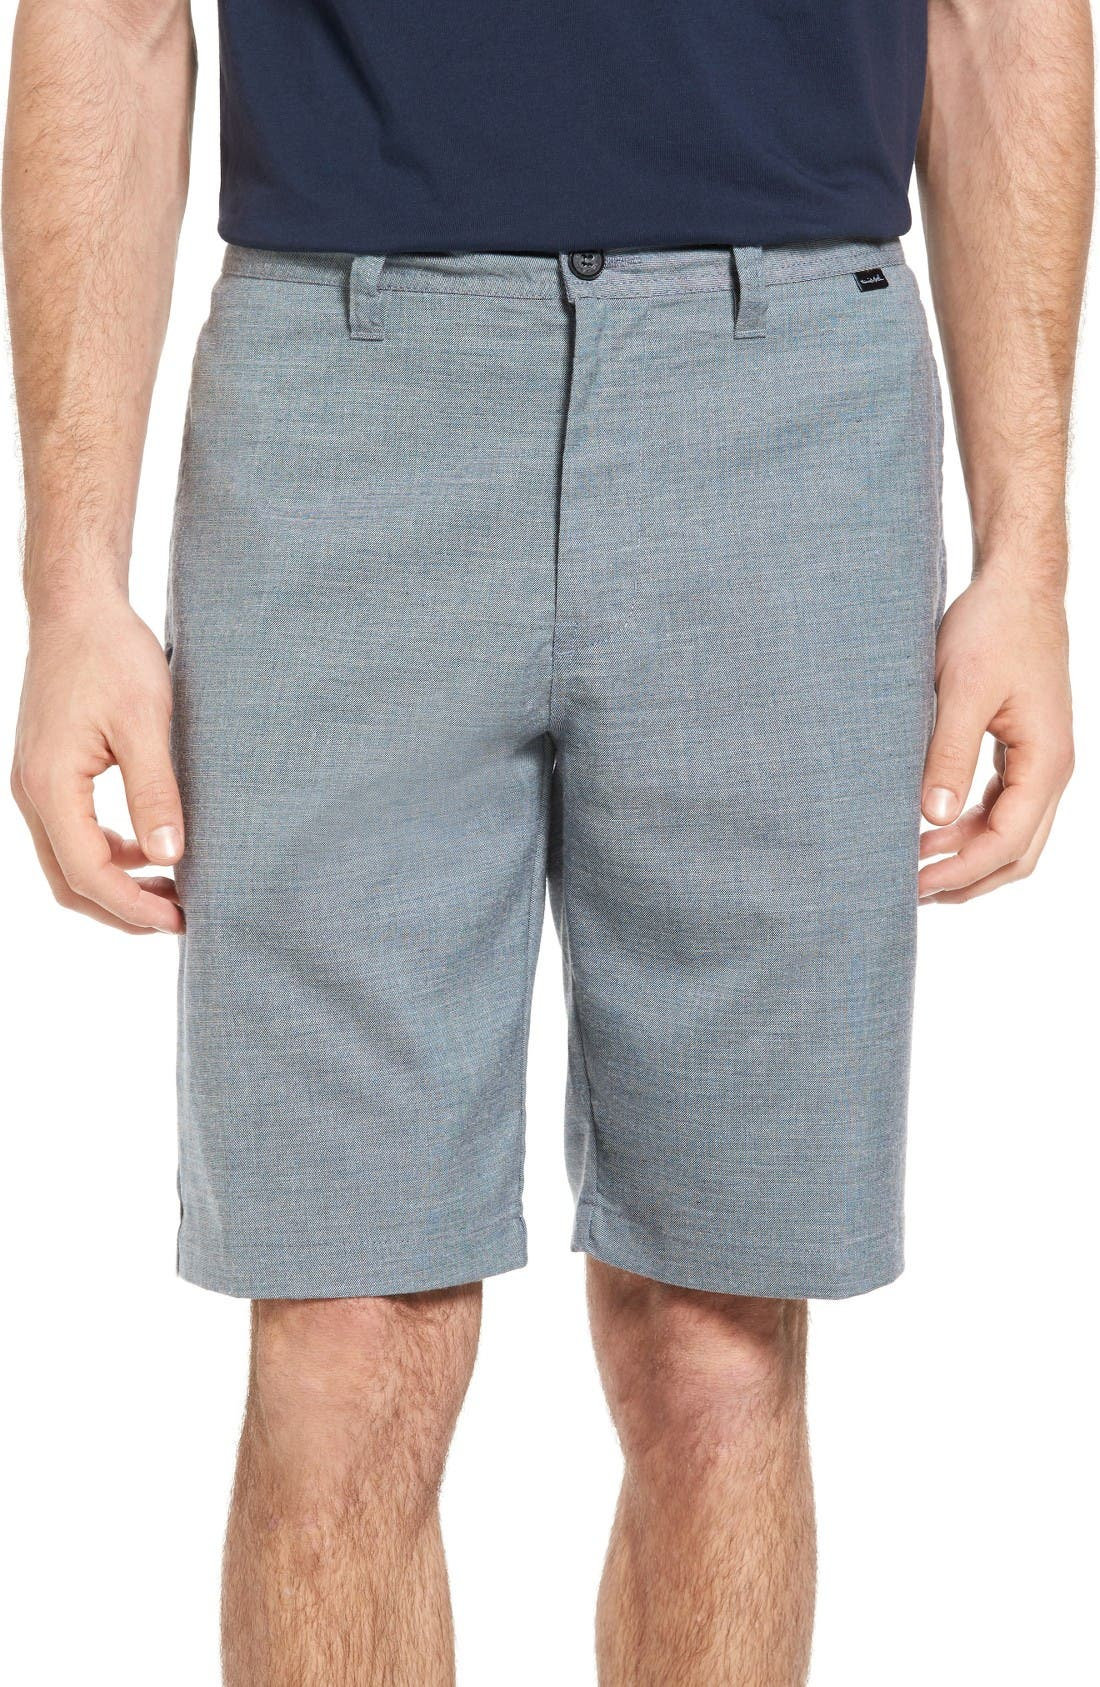 Travis Mathew Romers Stretch Shorts